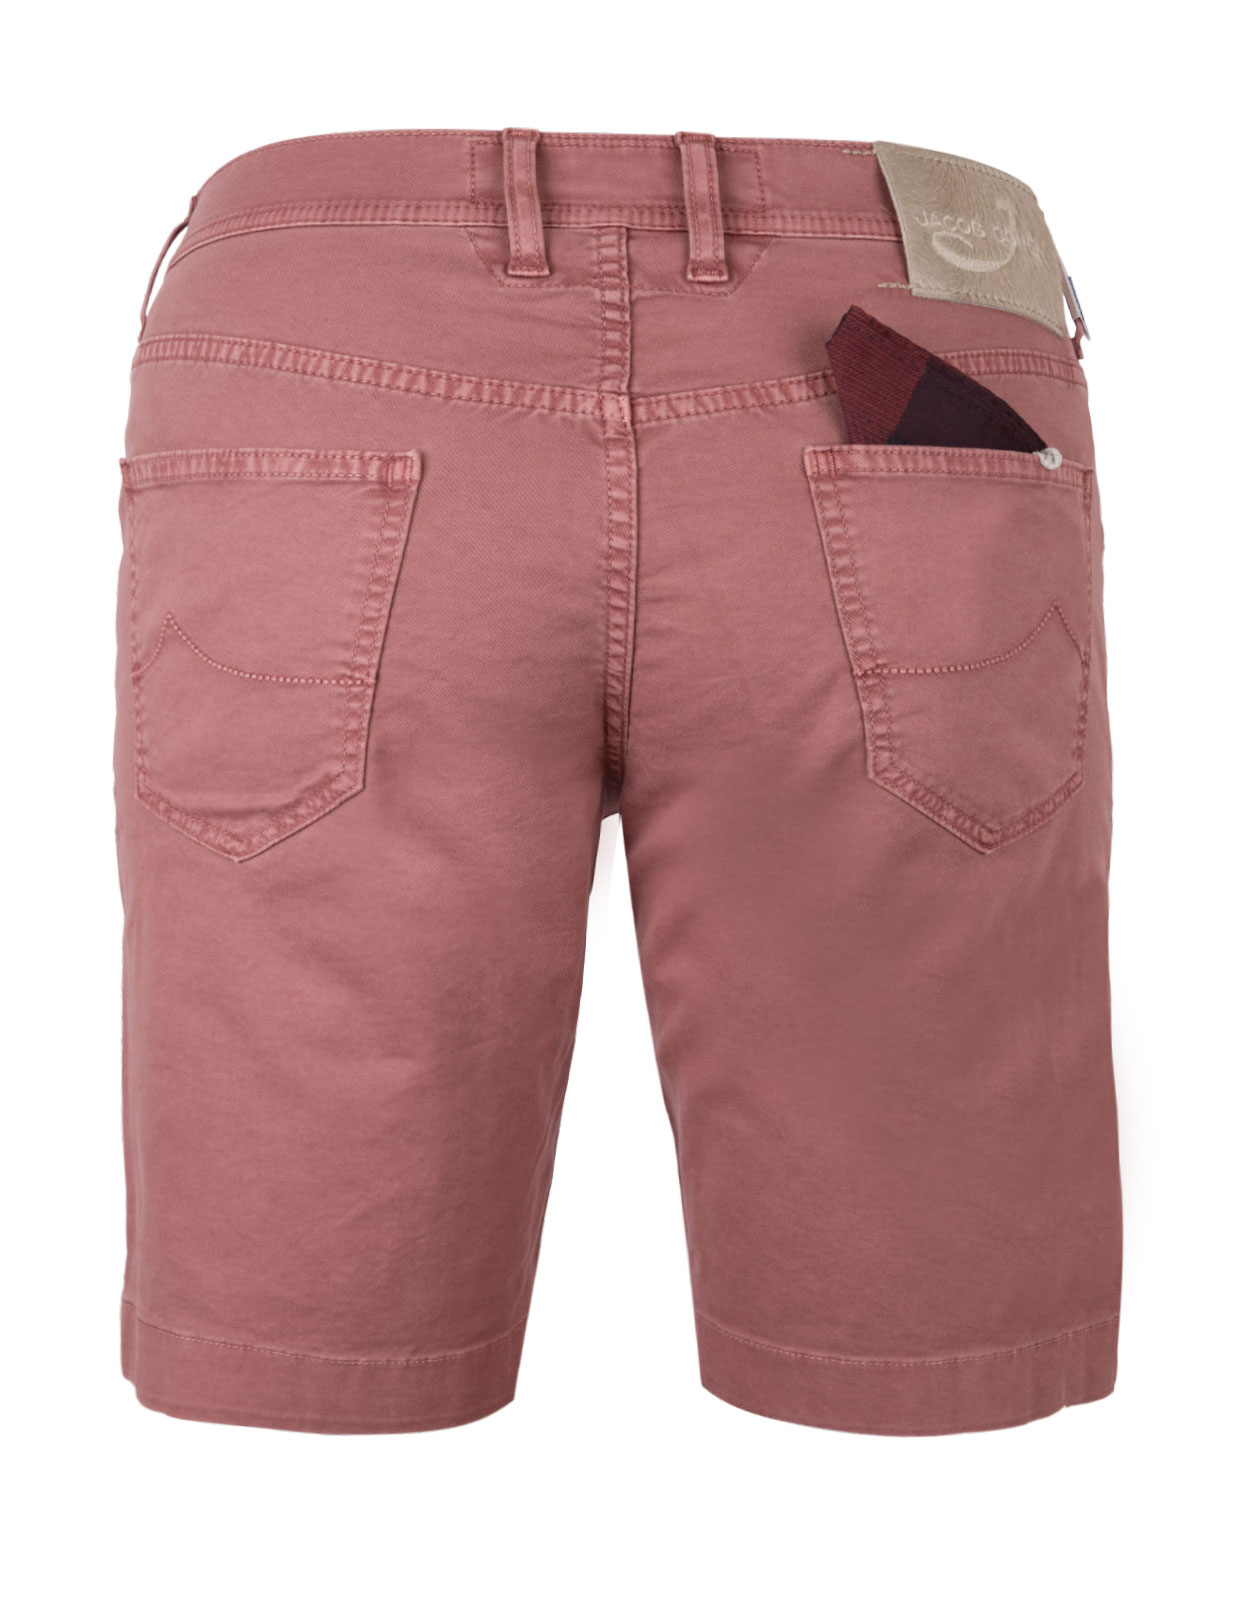 5-Pocket Shorts Cotton Lyocell Stretch Washed Red